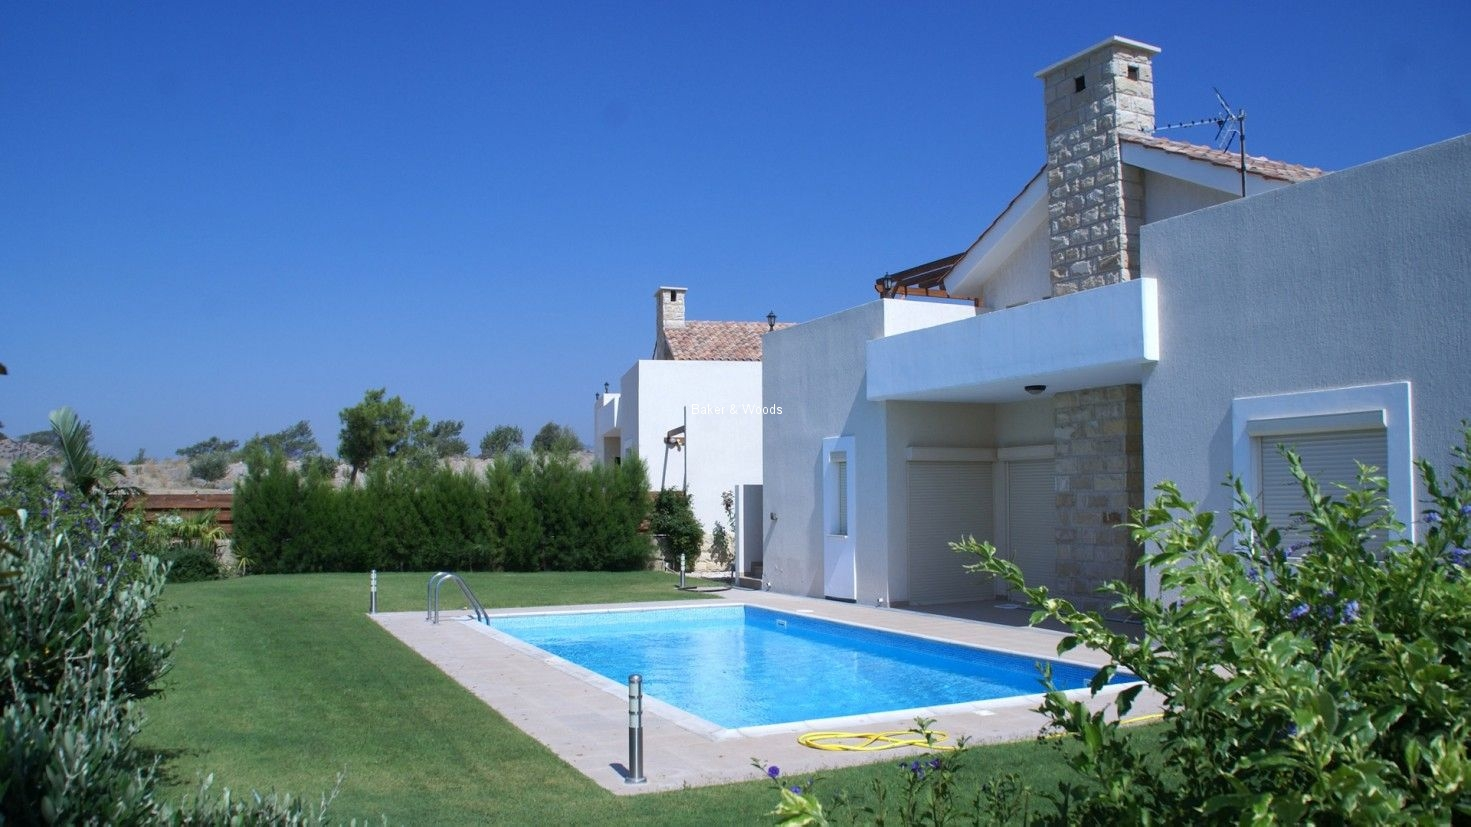 16-s0-monagroulli-hills-real-country-side-villas-in-large-plots-jt9b